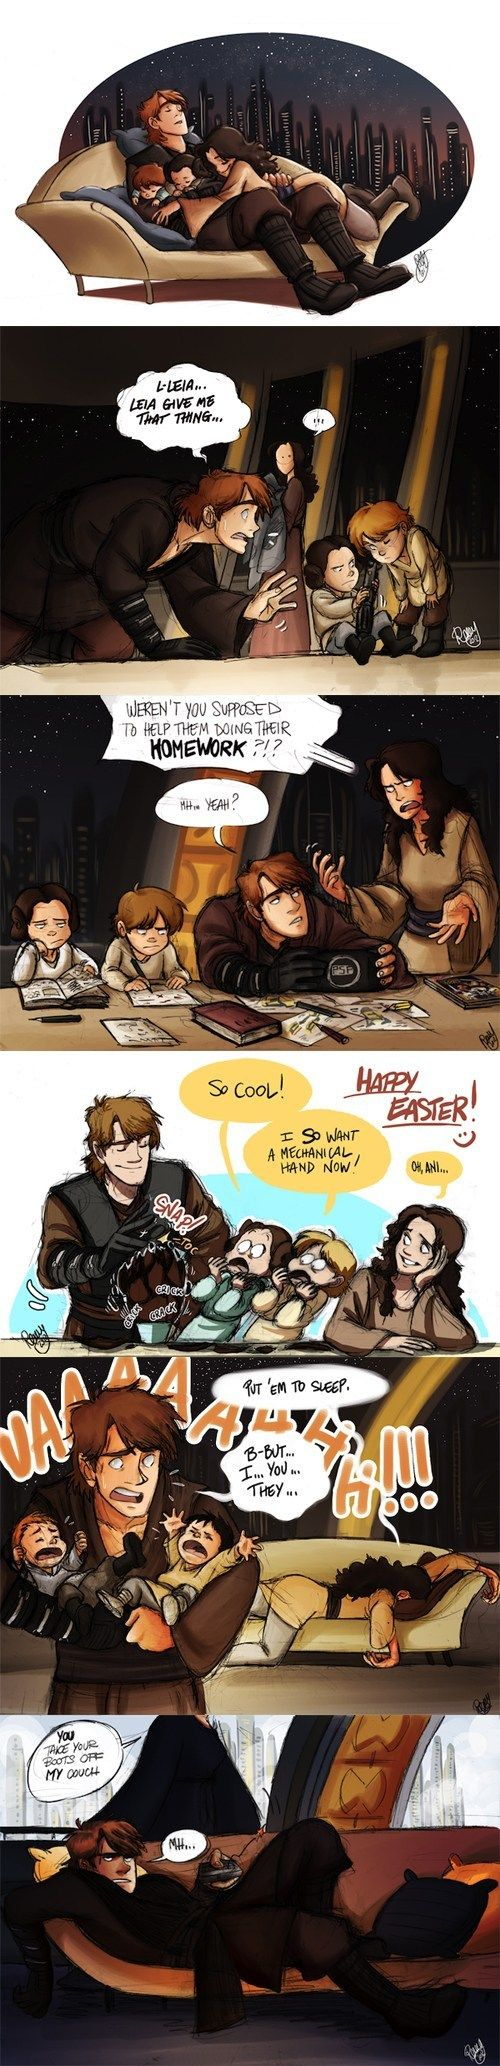 """If Anakin Hadn't Gone to the Dark Side""  Second one's my favorite!"